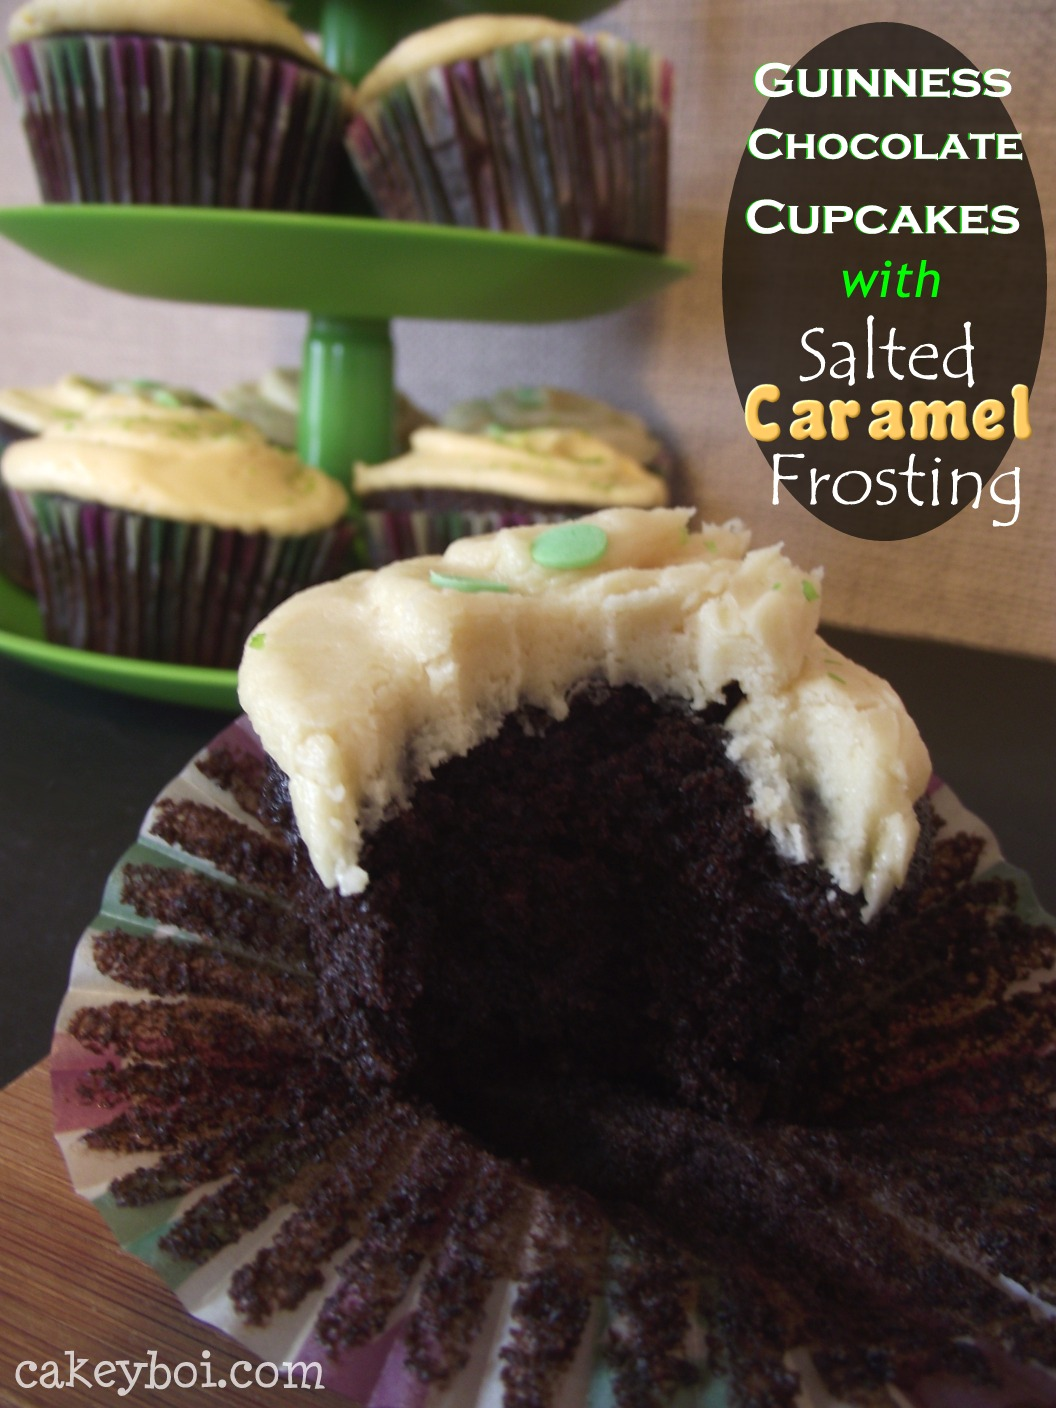 Guinness Chocolate Cupcakes with Salted Caramel Frosting